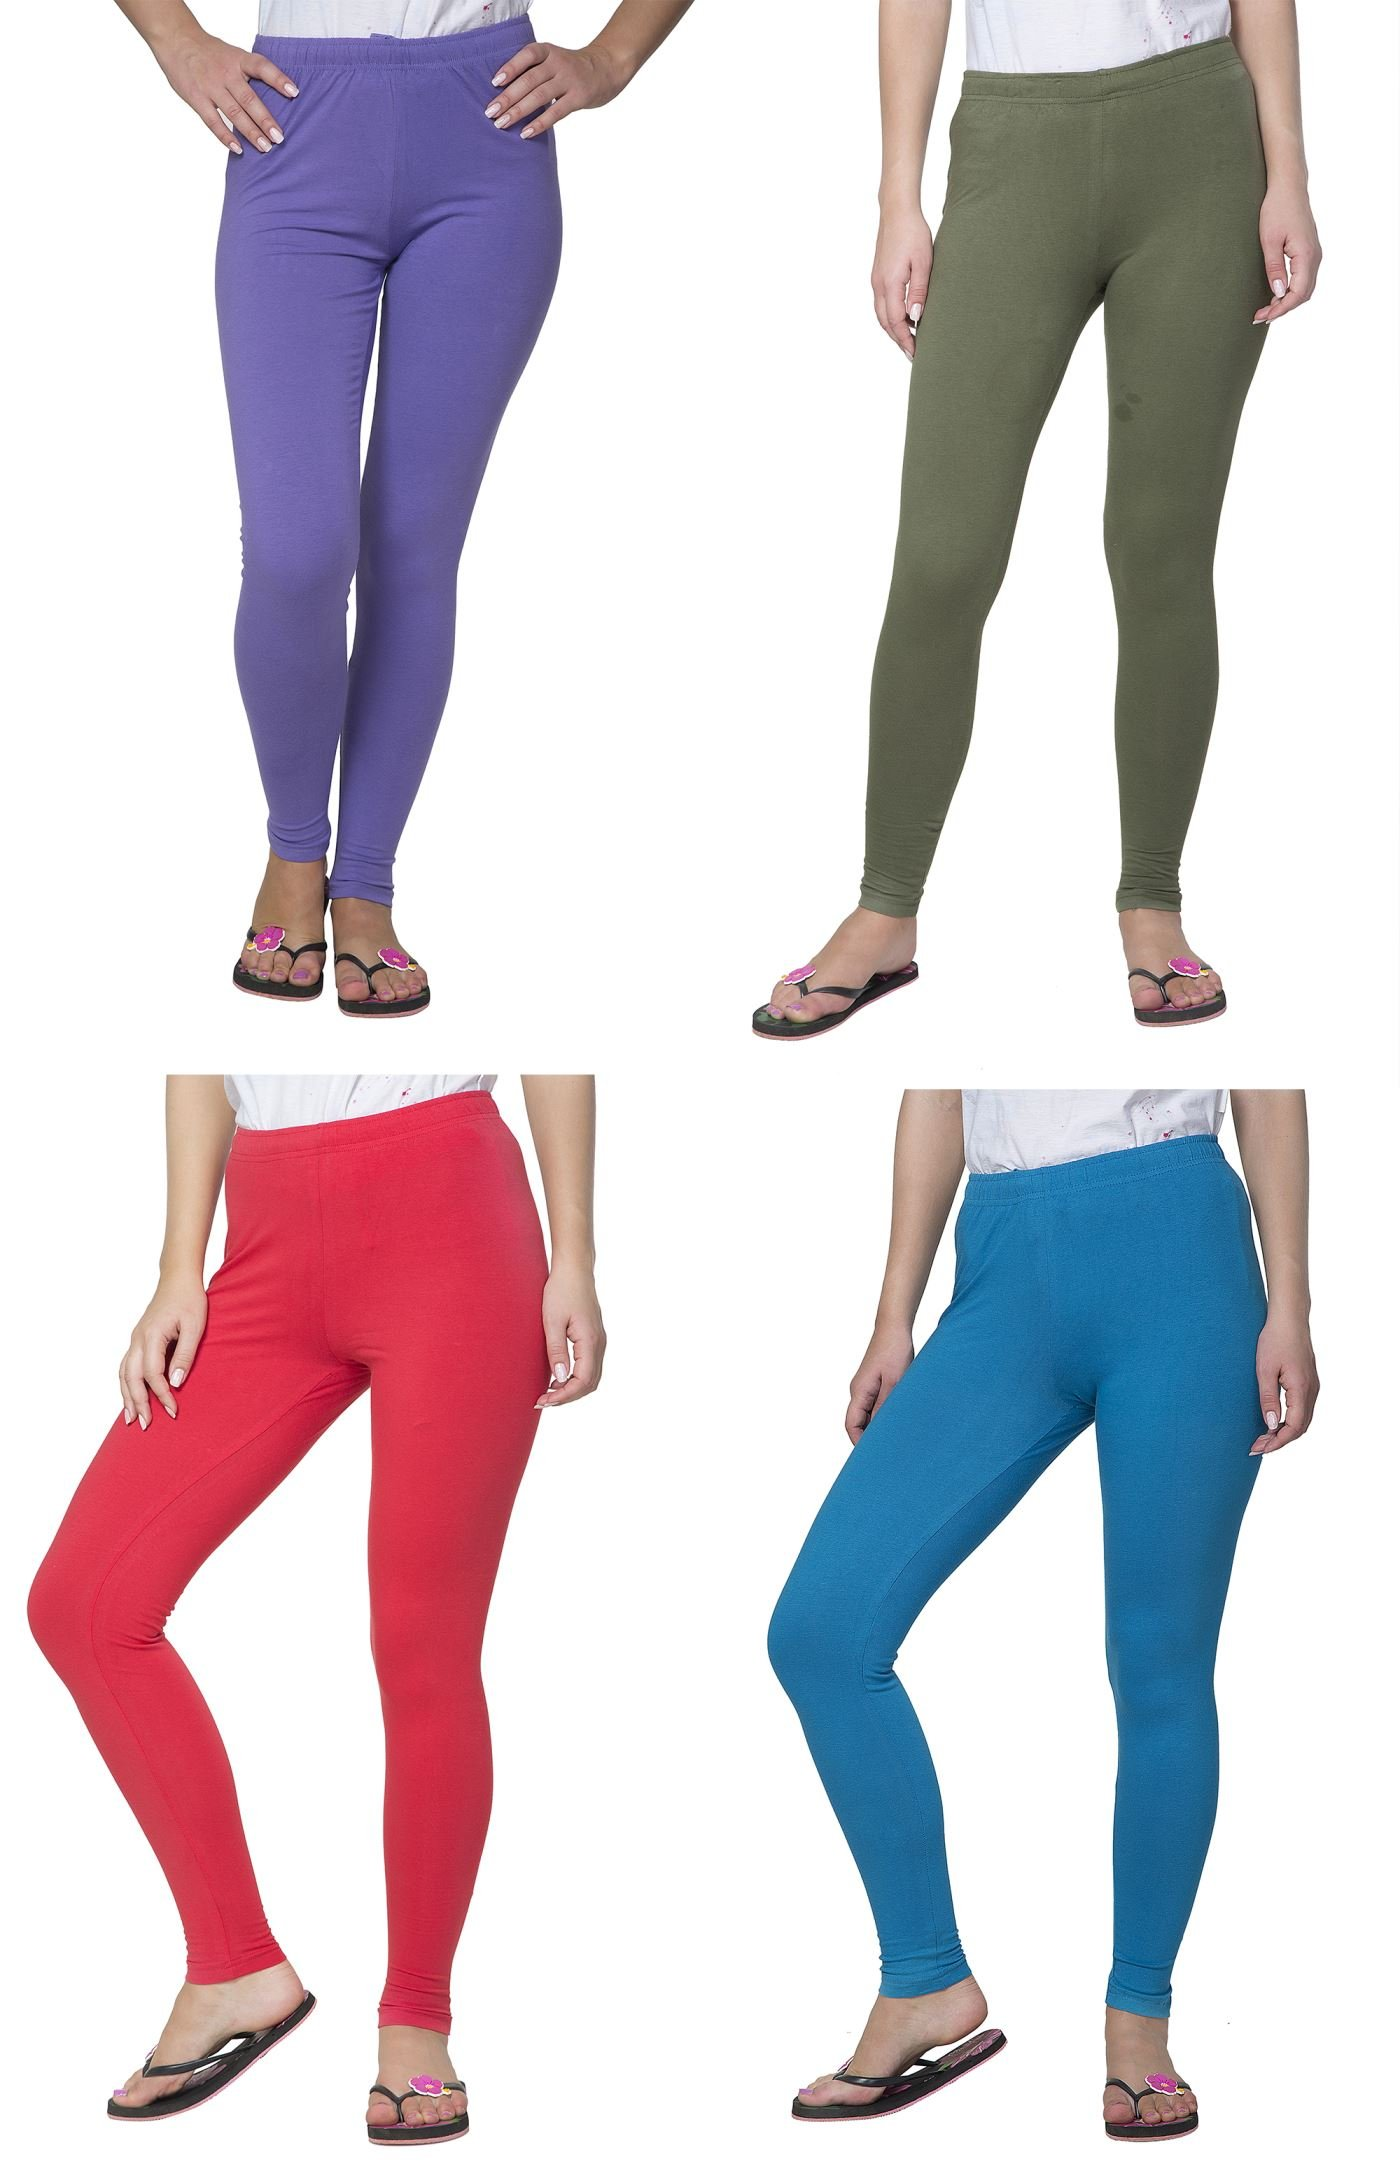 Clifton Women's Cotton Spandex Fine Jersey Leggings Pack of 4-Assorted-1-2XL